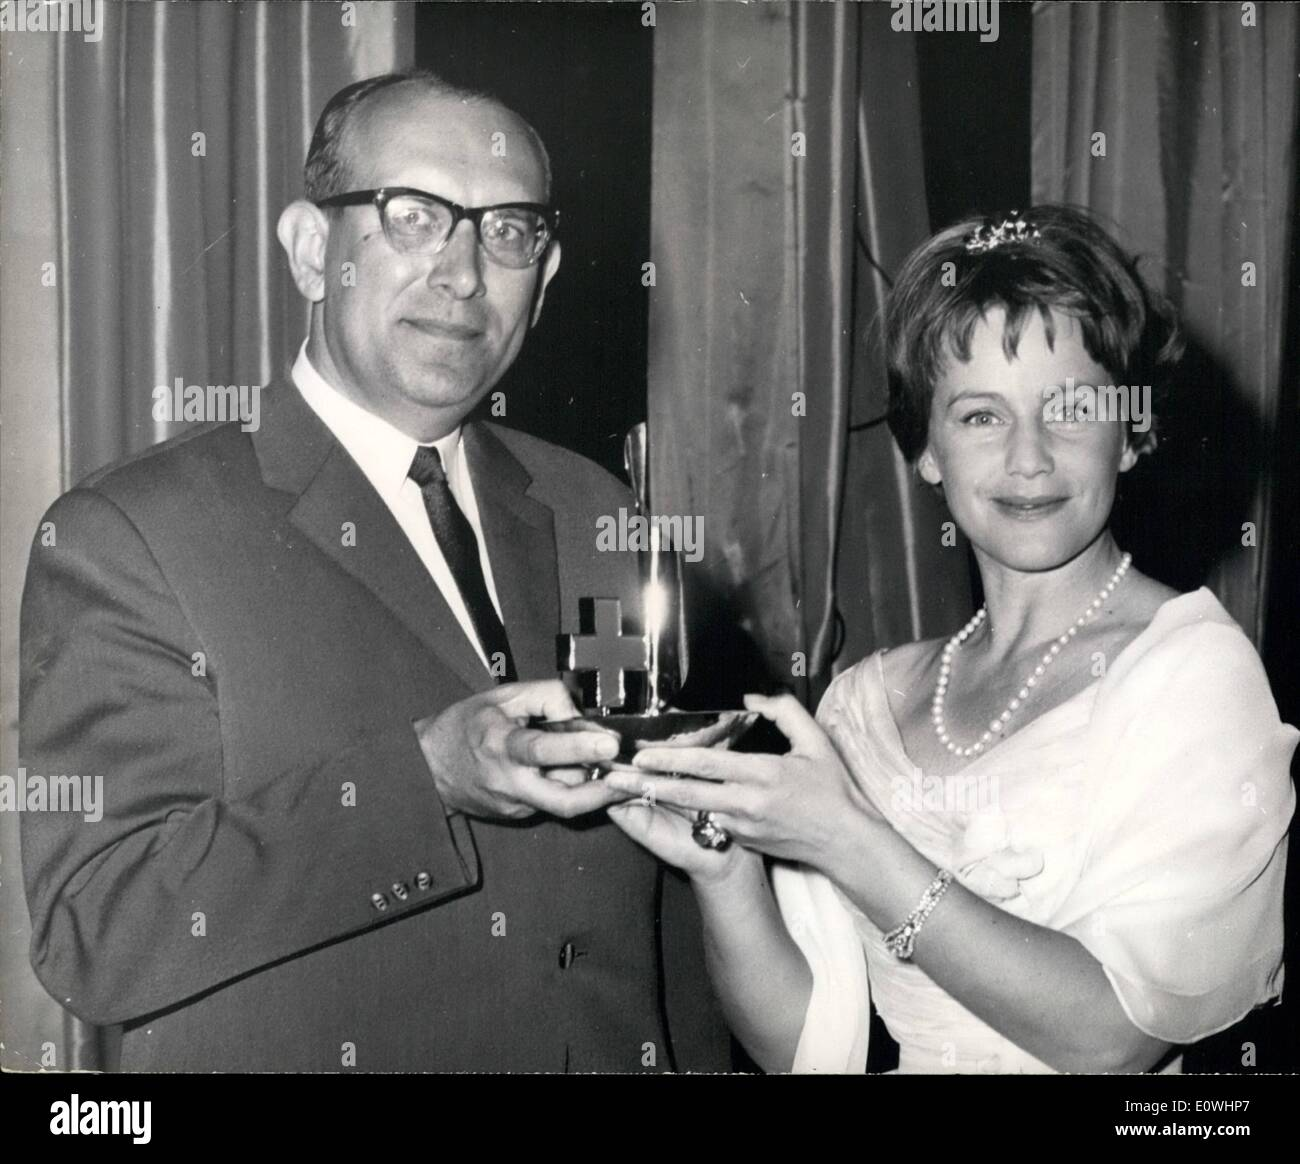 May 05, 1963 - Remitting The ''Palme D'Or'' At The International Red-Cross Film Festival: Beside the great film festival in Cannes  took place the presentation of the winner of the International Red-Cross film festival who at the same time received his award. Photo Shows: President of the Jury, Maria Schell, hands over the ''Palme D'Or'' to Dr. Hinz, president of the German Red - Cross for the picture ''Fidele A L'Espeet' - Stock Image